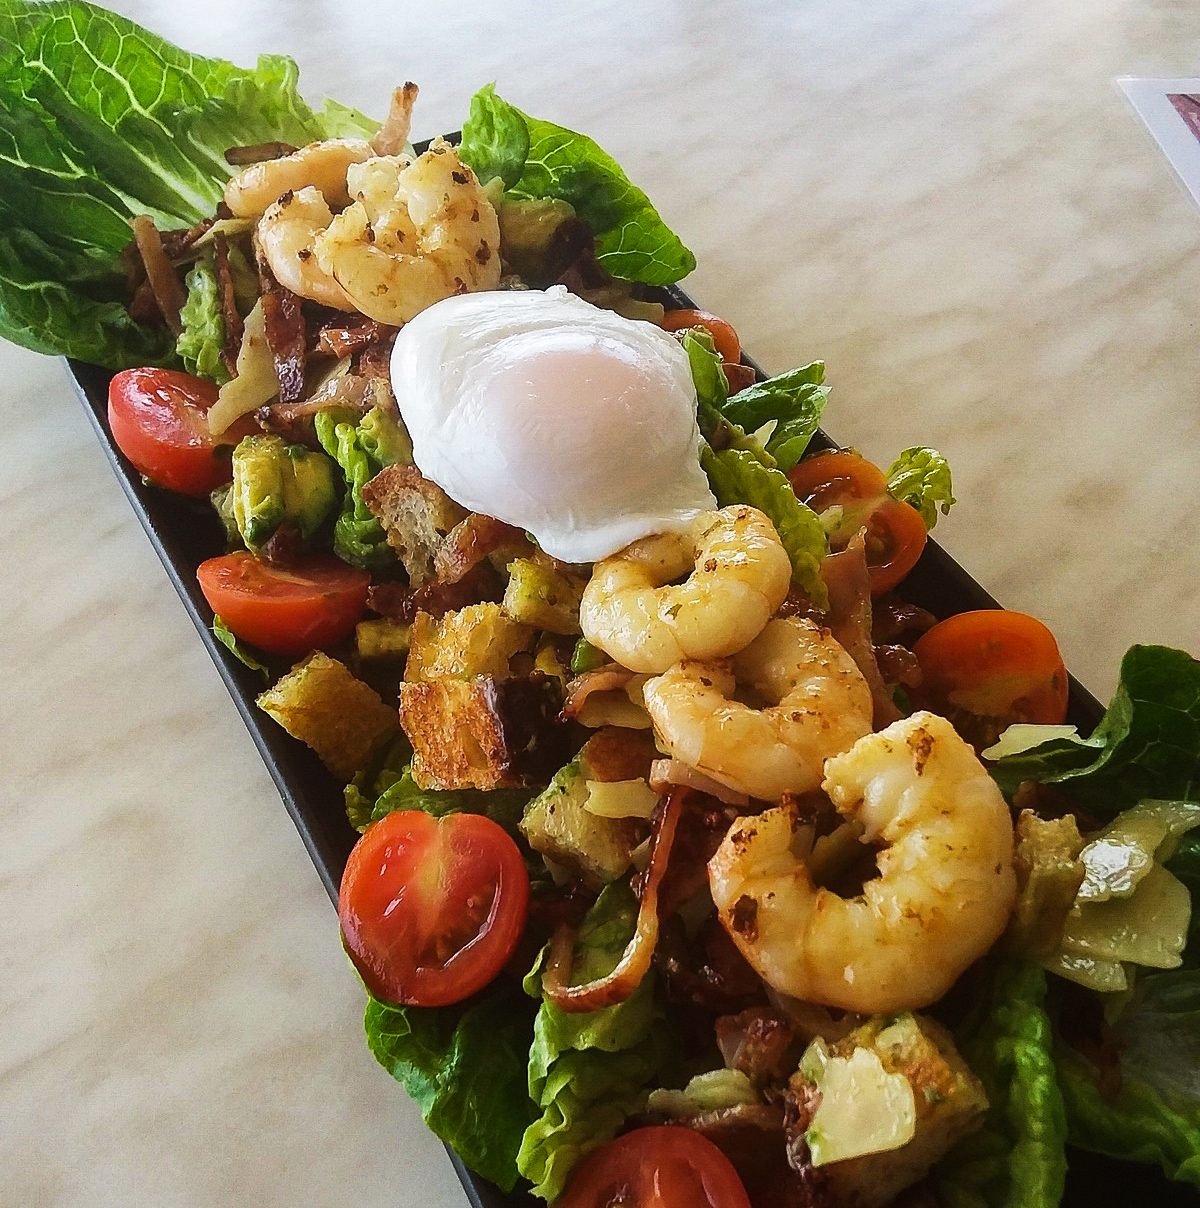 Sunsets King Prawn Caesar SaladCrisp Romaine lettuce, Carnarvon Avocados & Cherry Tomatoes, Crisp Bacon, Shaved Parmesan,Garlic Croutons tossed in a Caesar dressing topped with grilled Shark Bay King Prawns $26.00 - Availability: Lunch and Dinner, 11:30am – Closing times